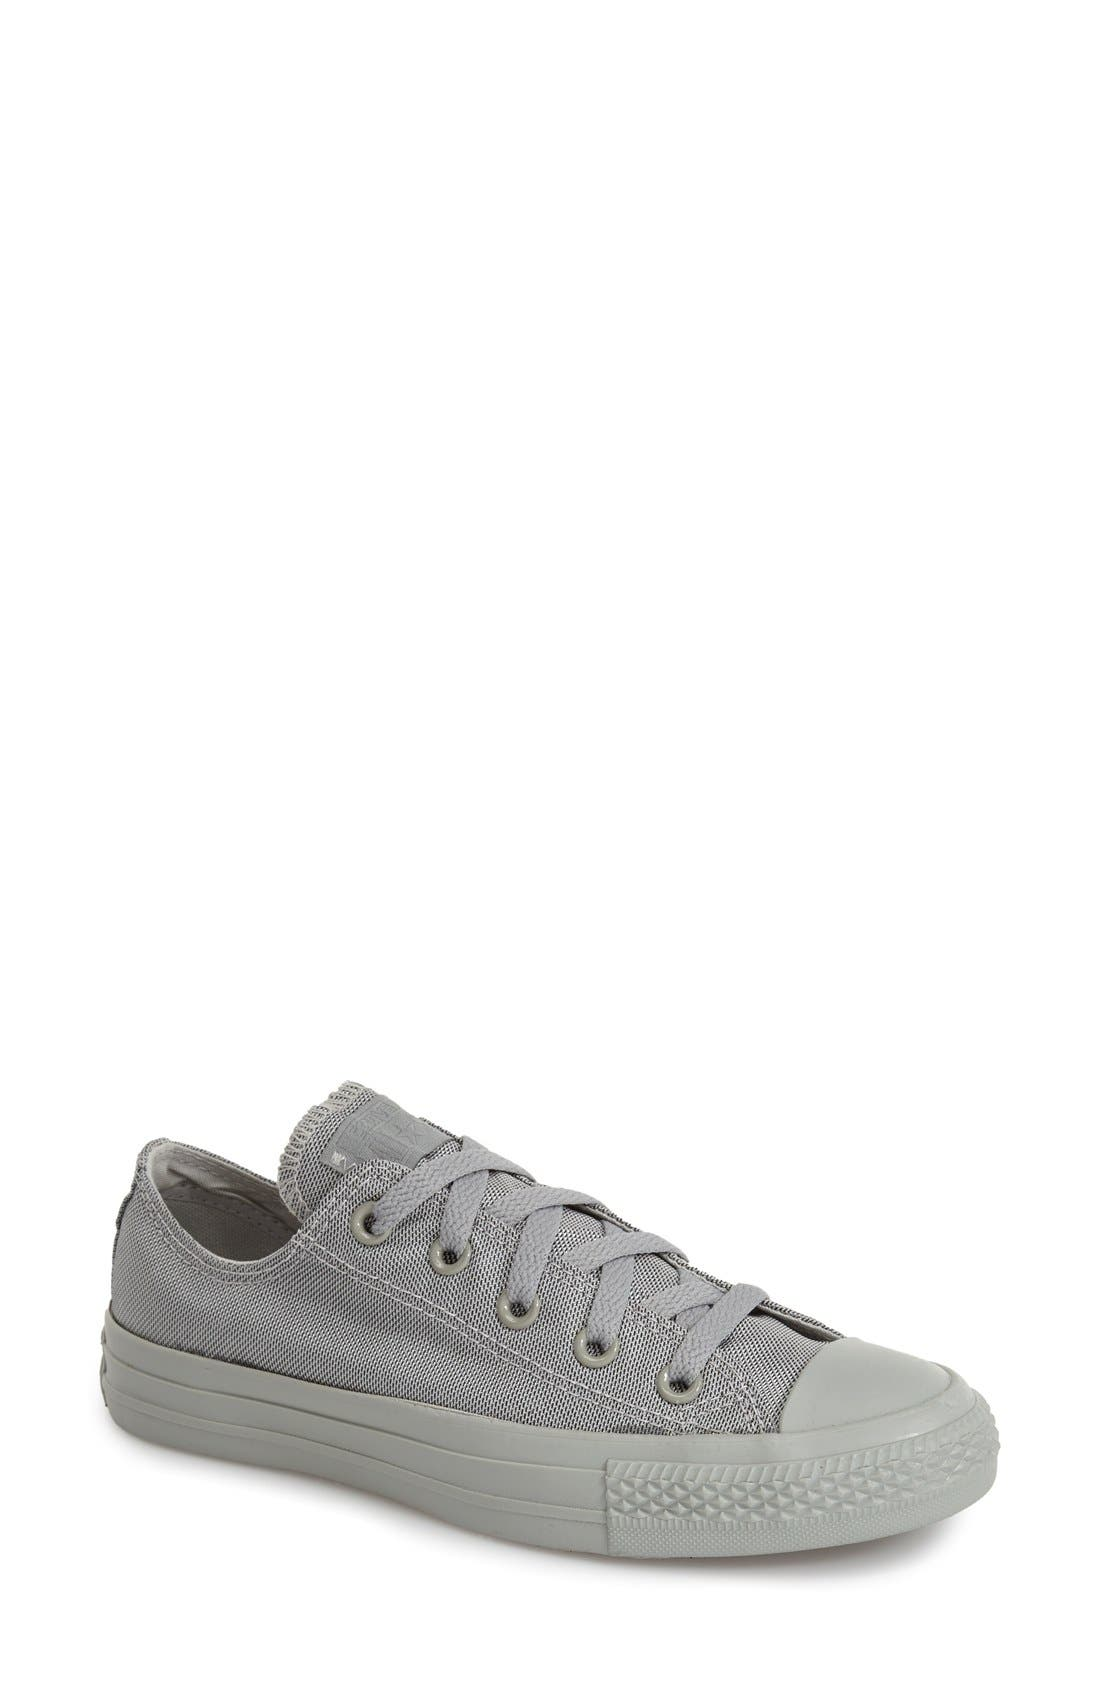 Main Image - Converse Chuck Taylor® All Star® Low Top Sneaker (Women)